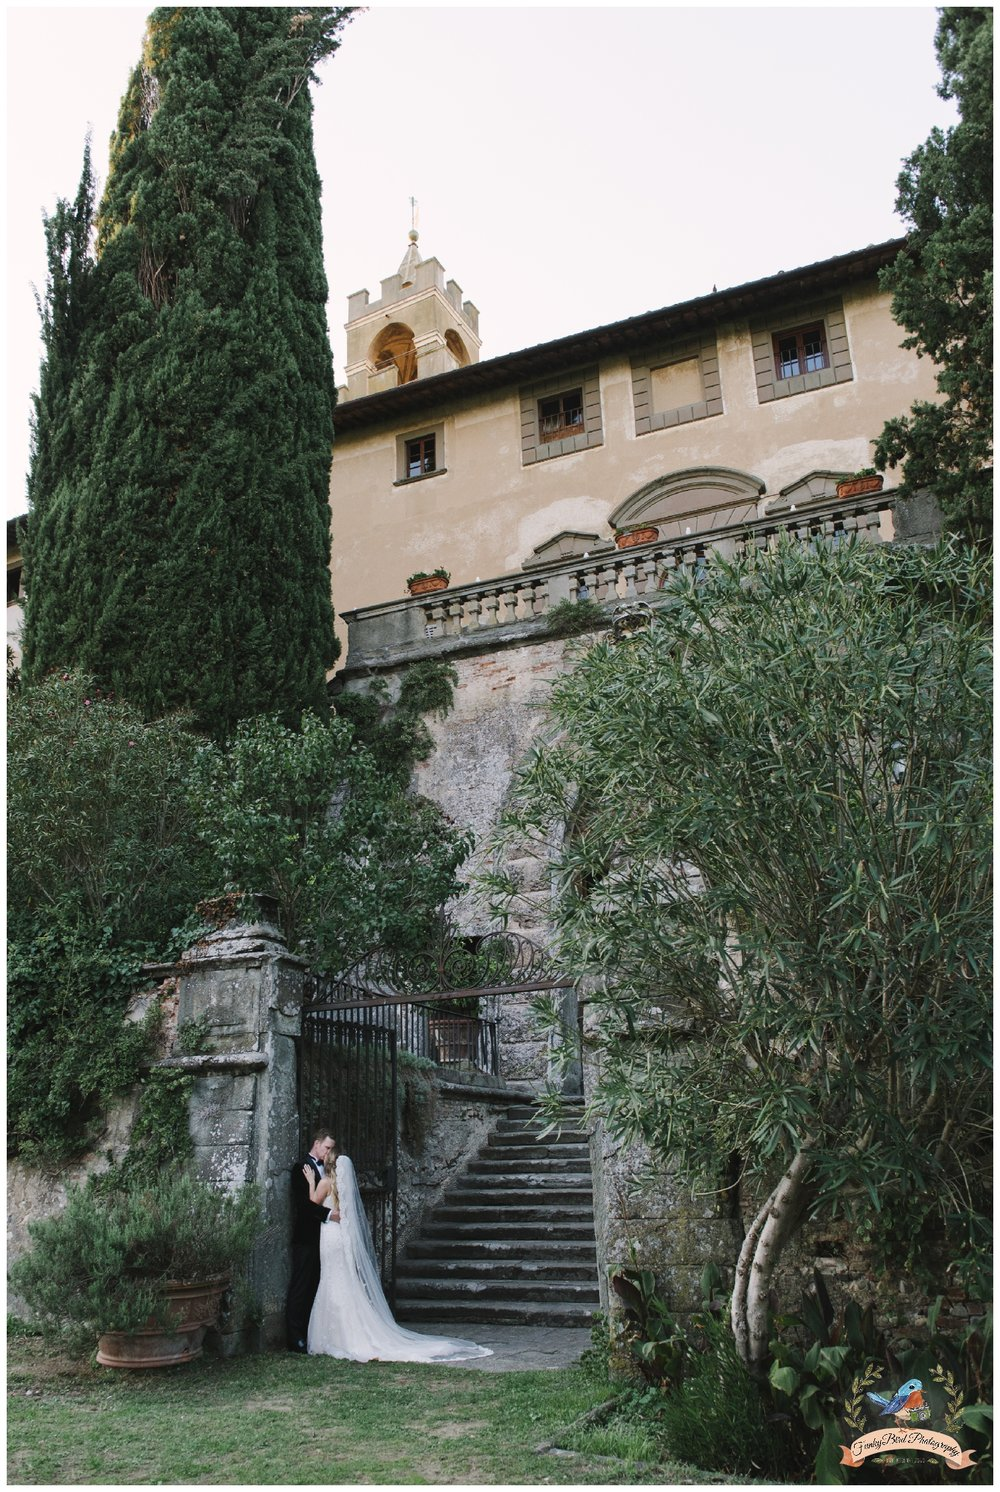 Wedding_Photographer_Tuscany_Italy_0062.jpg